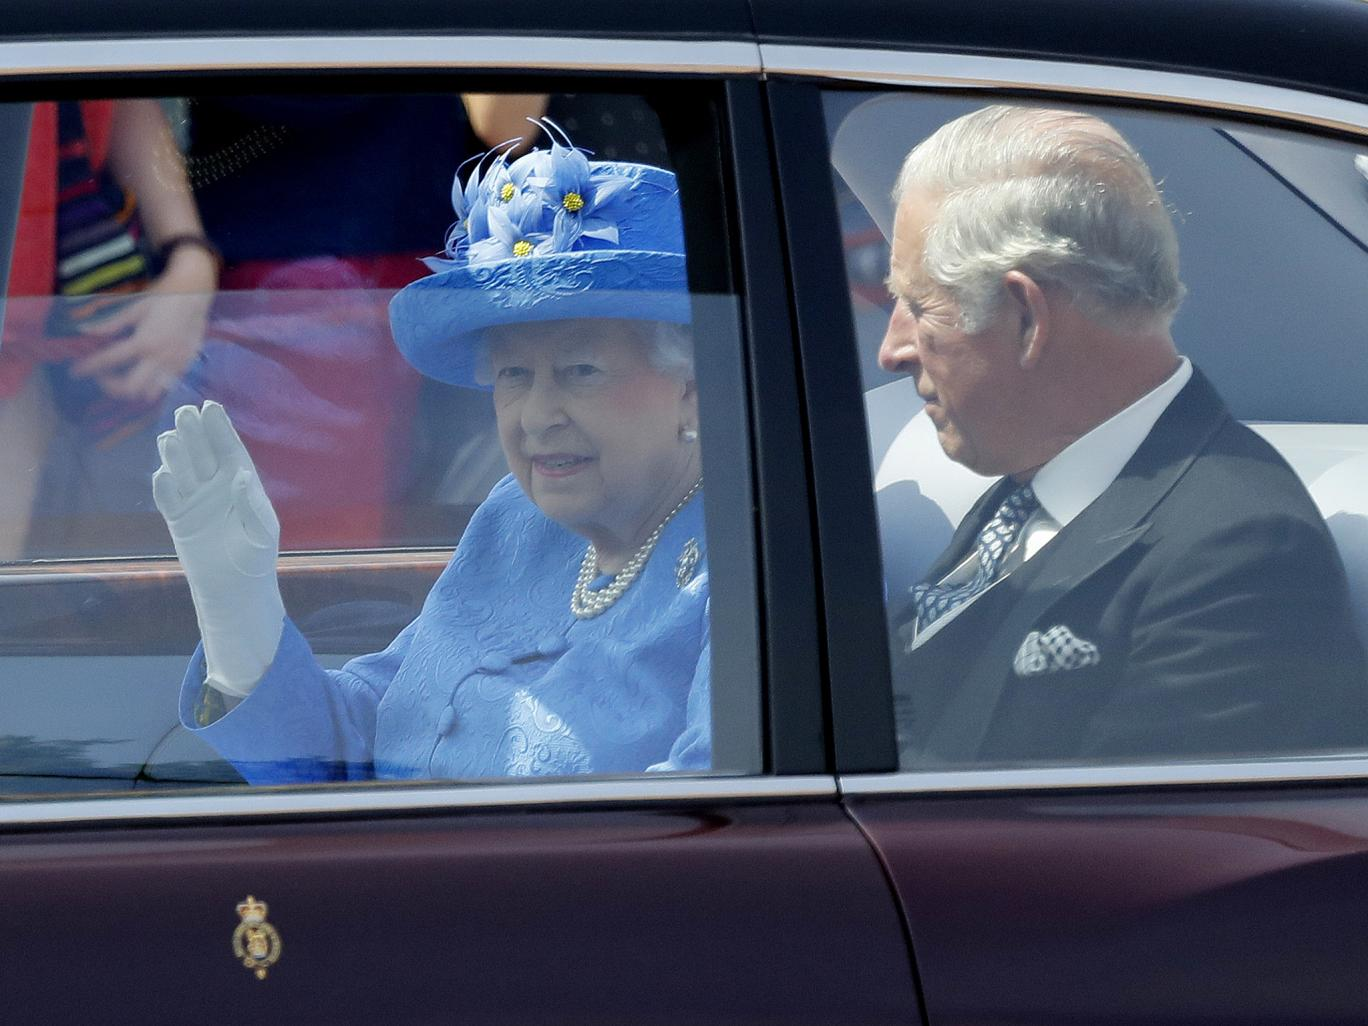 queen-in-car